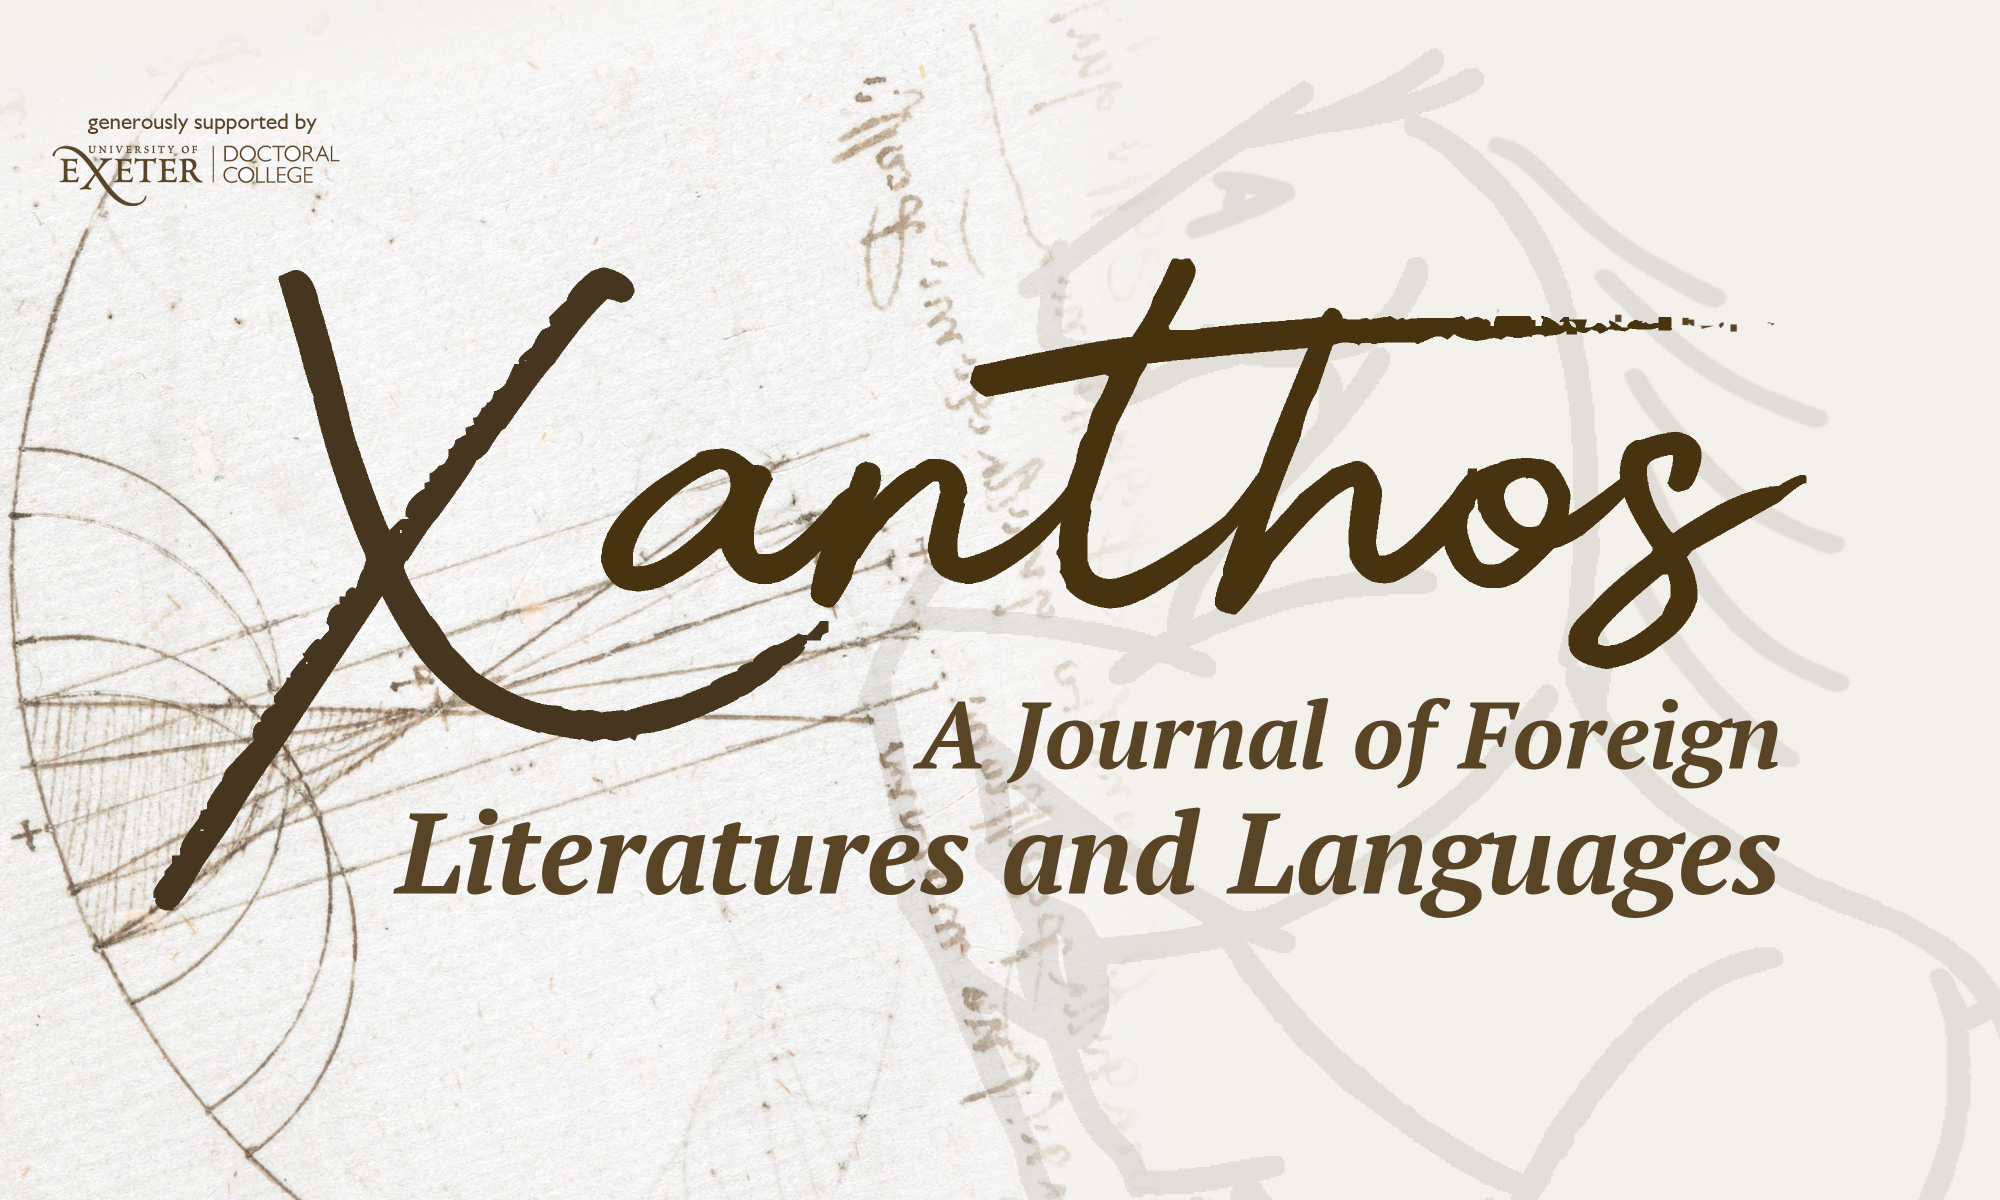 Xanthos Journal